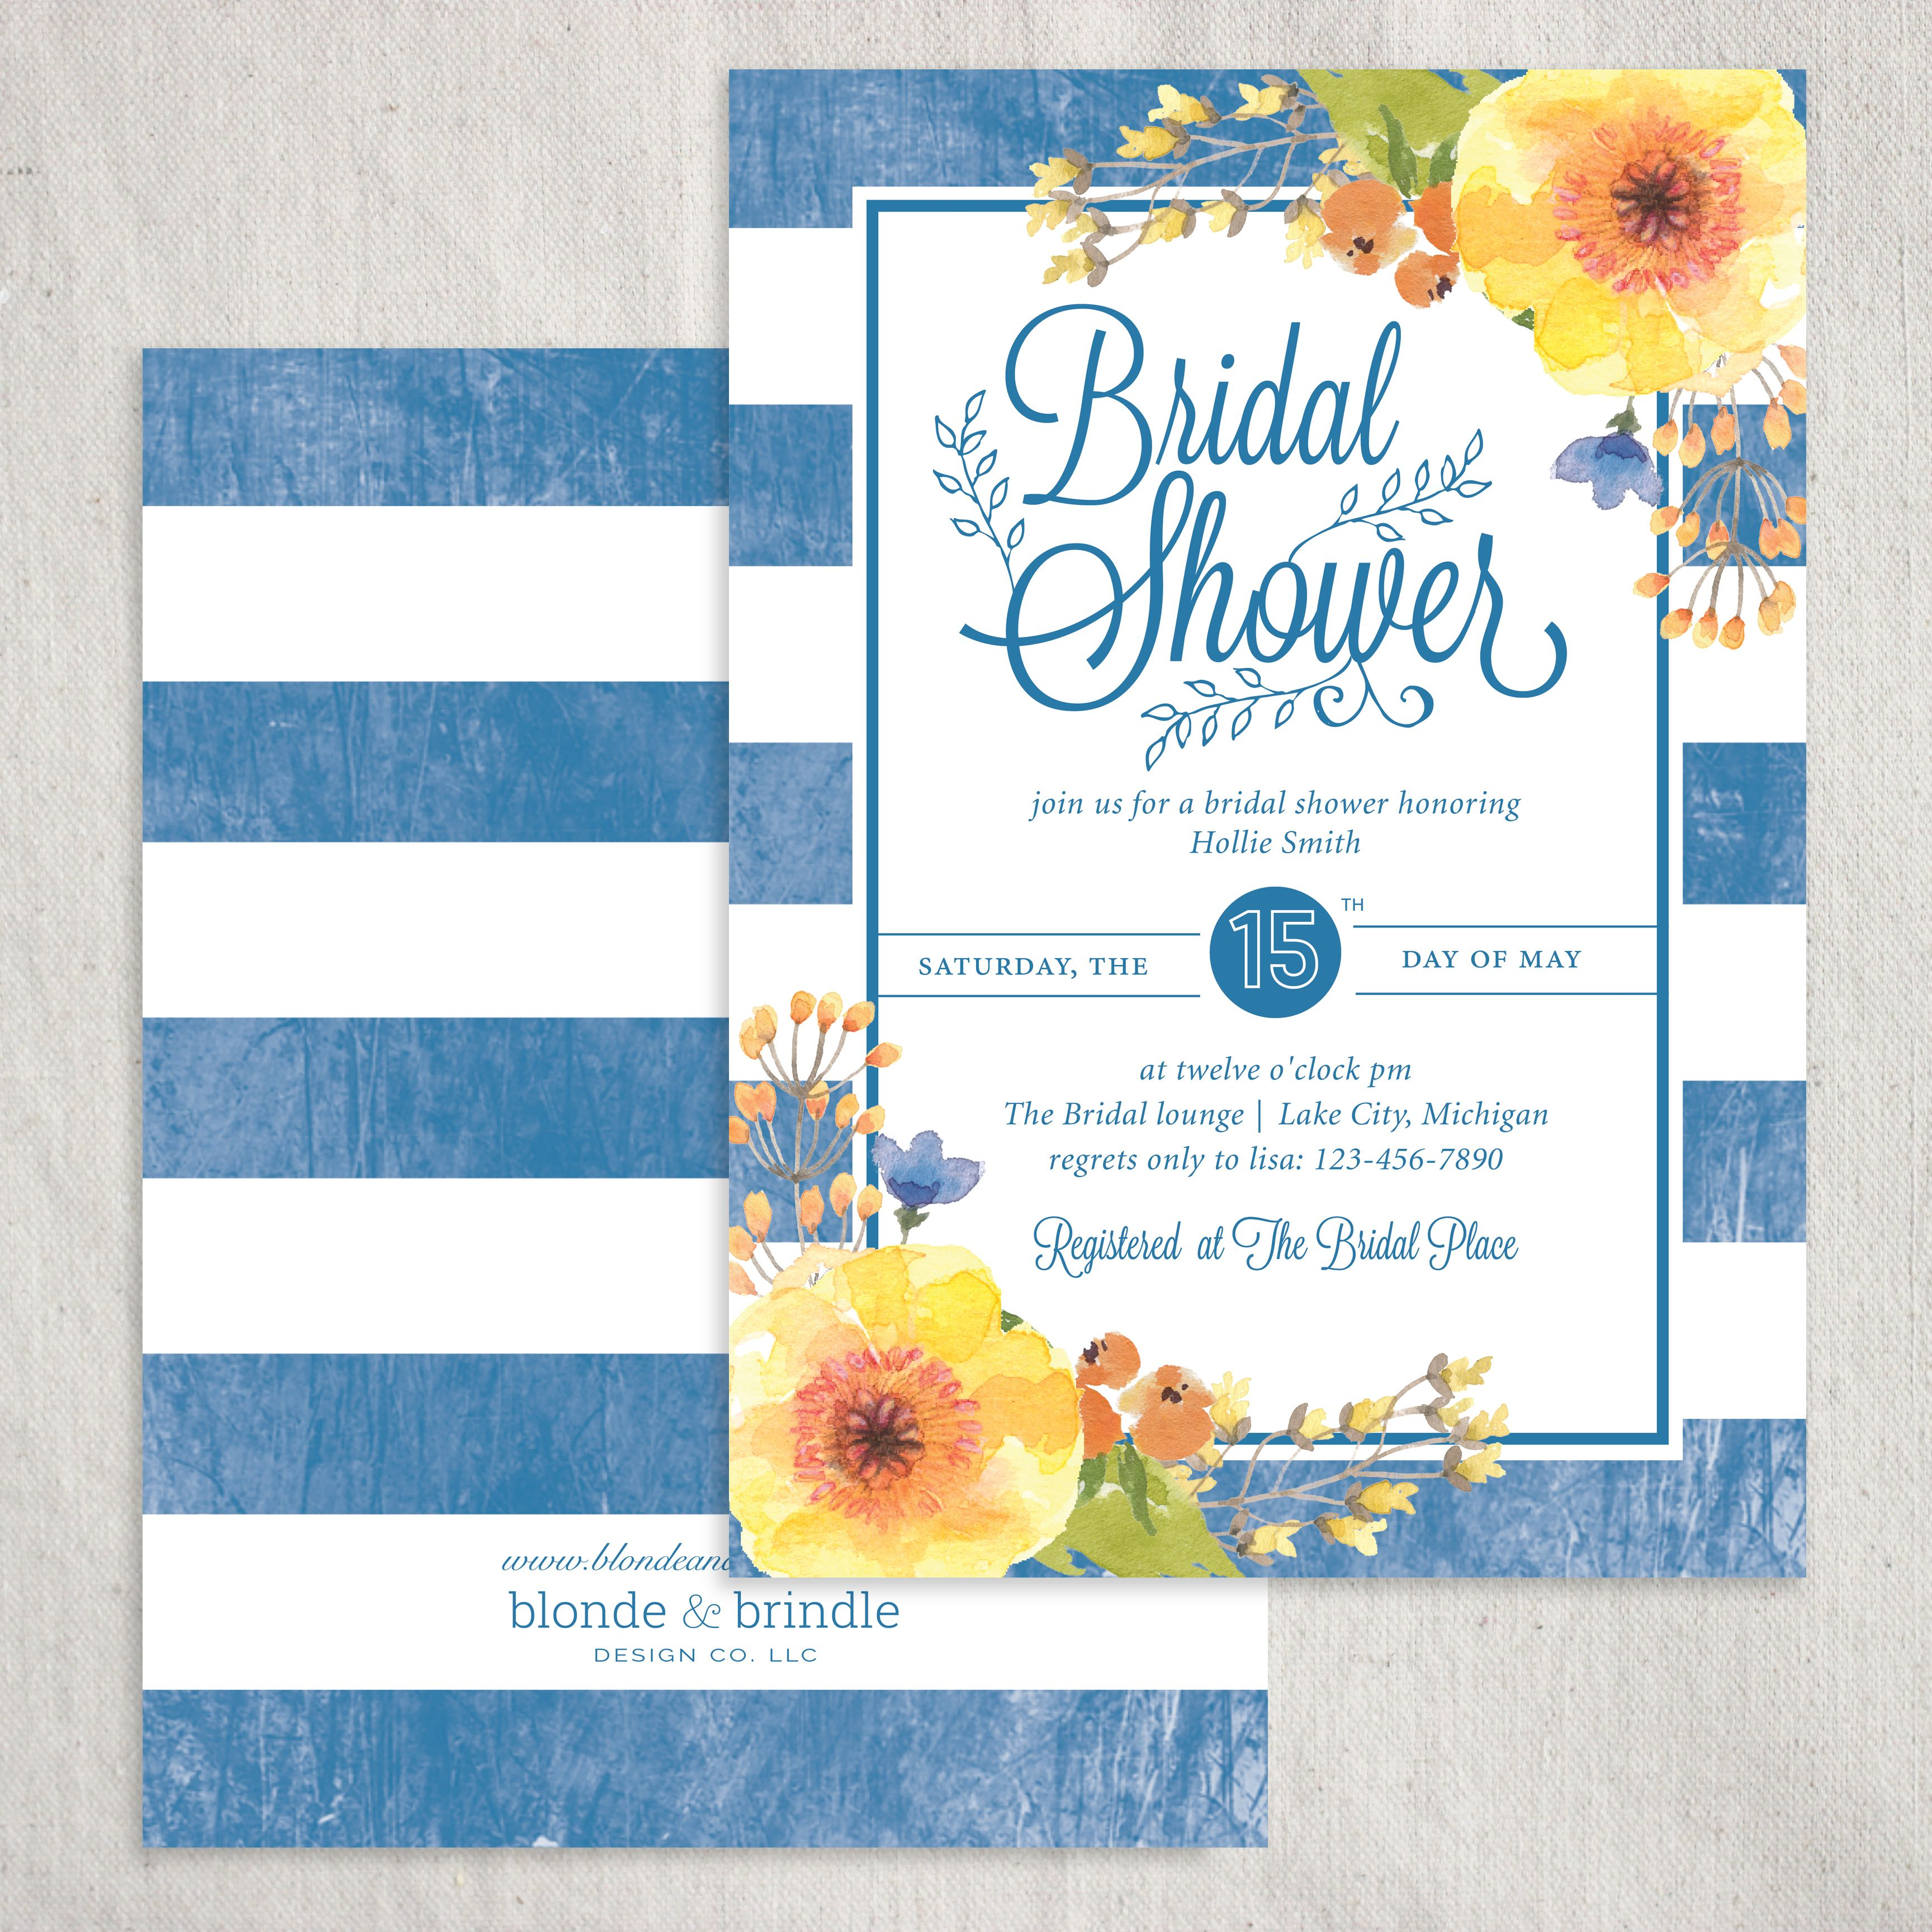 Beautiful bridal shower invitation featuring bold, blue stripes with complimentary, delicate, yellow flowers.